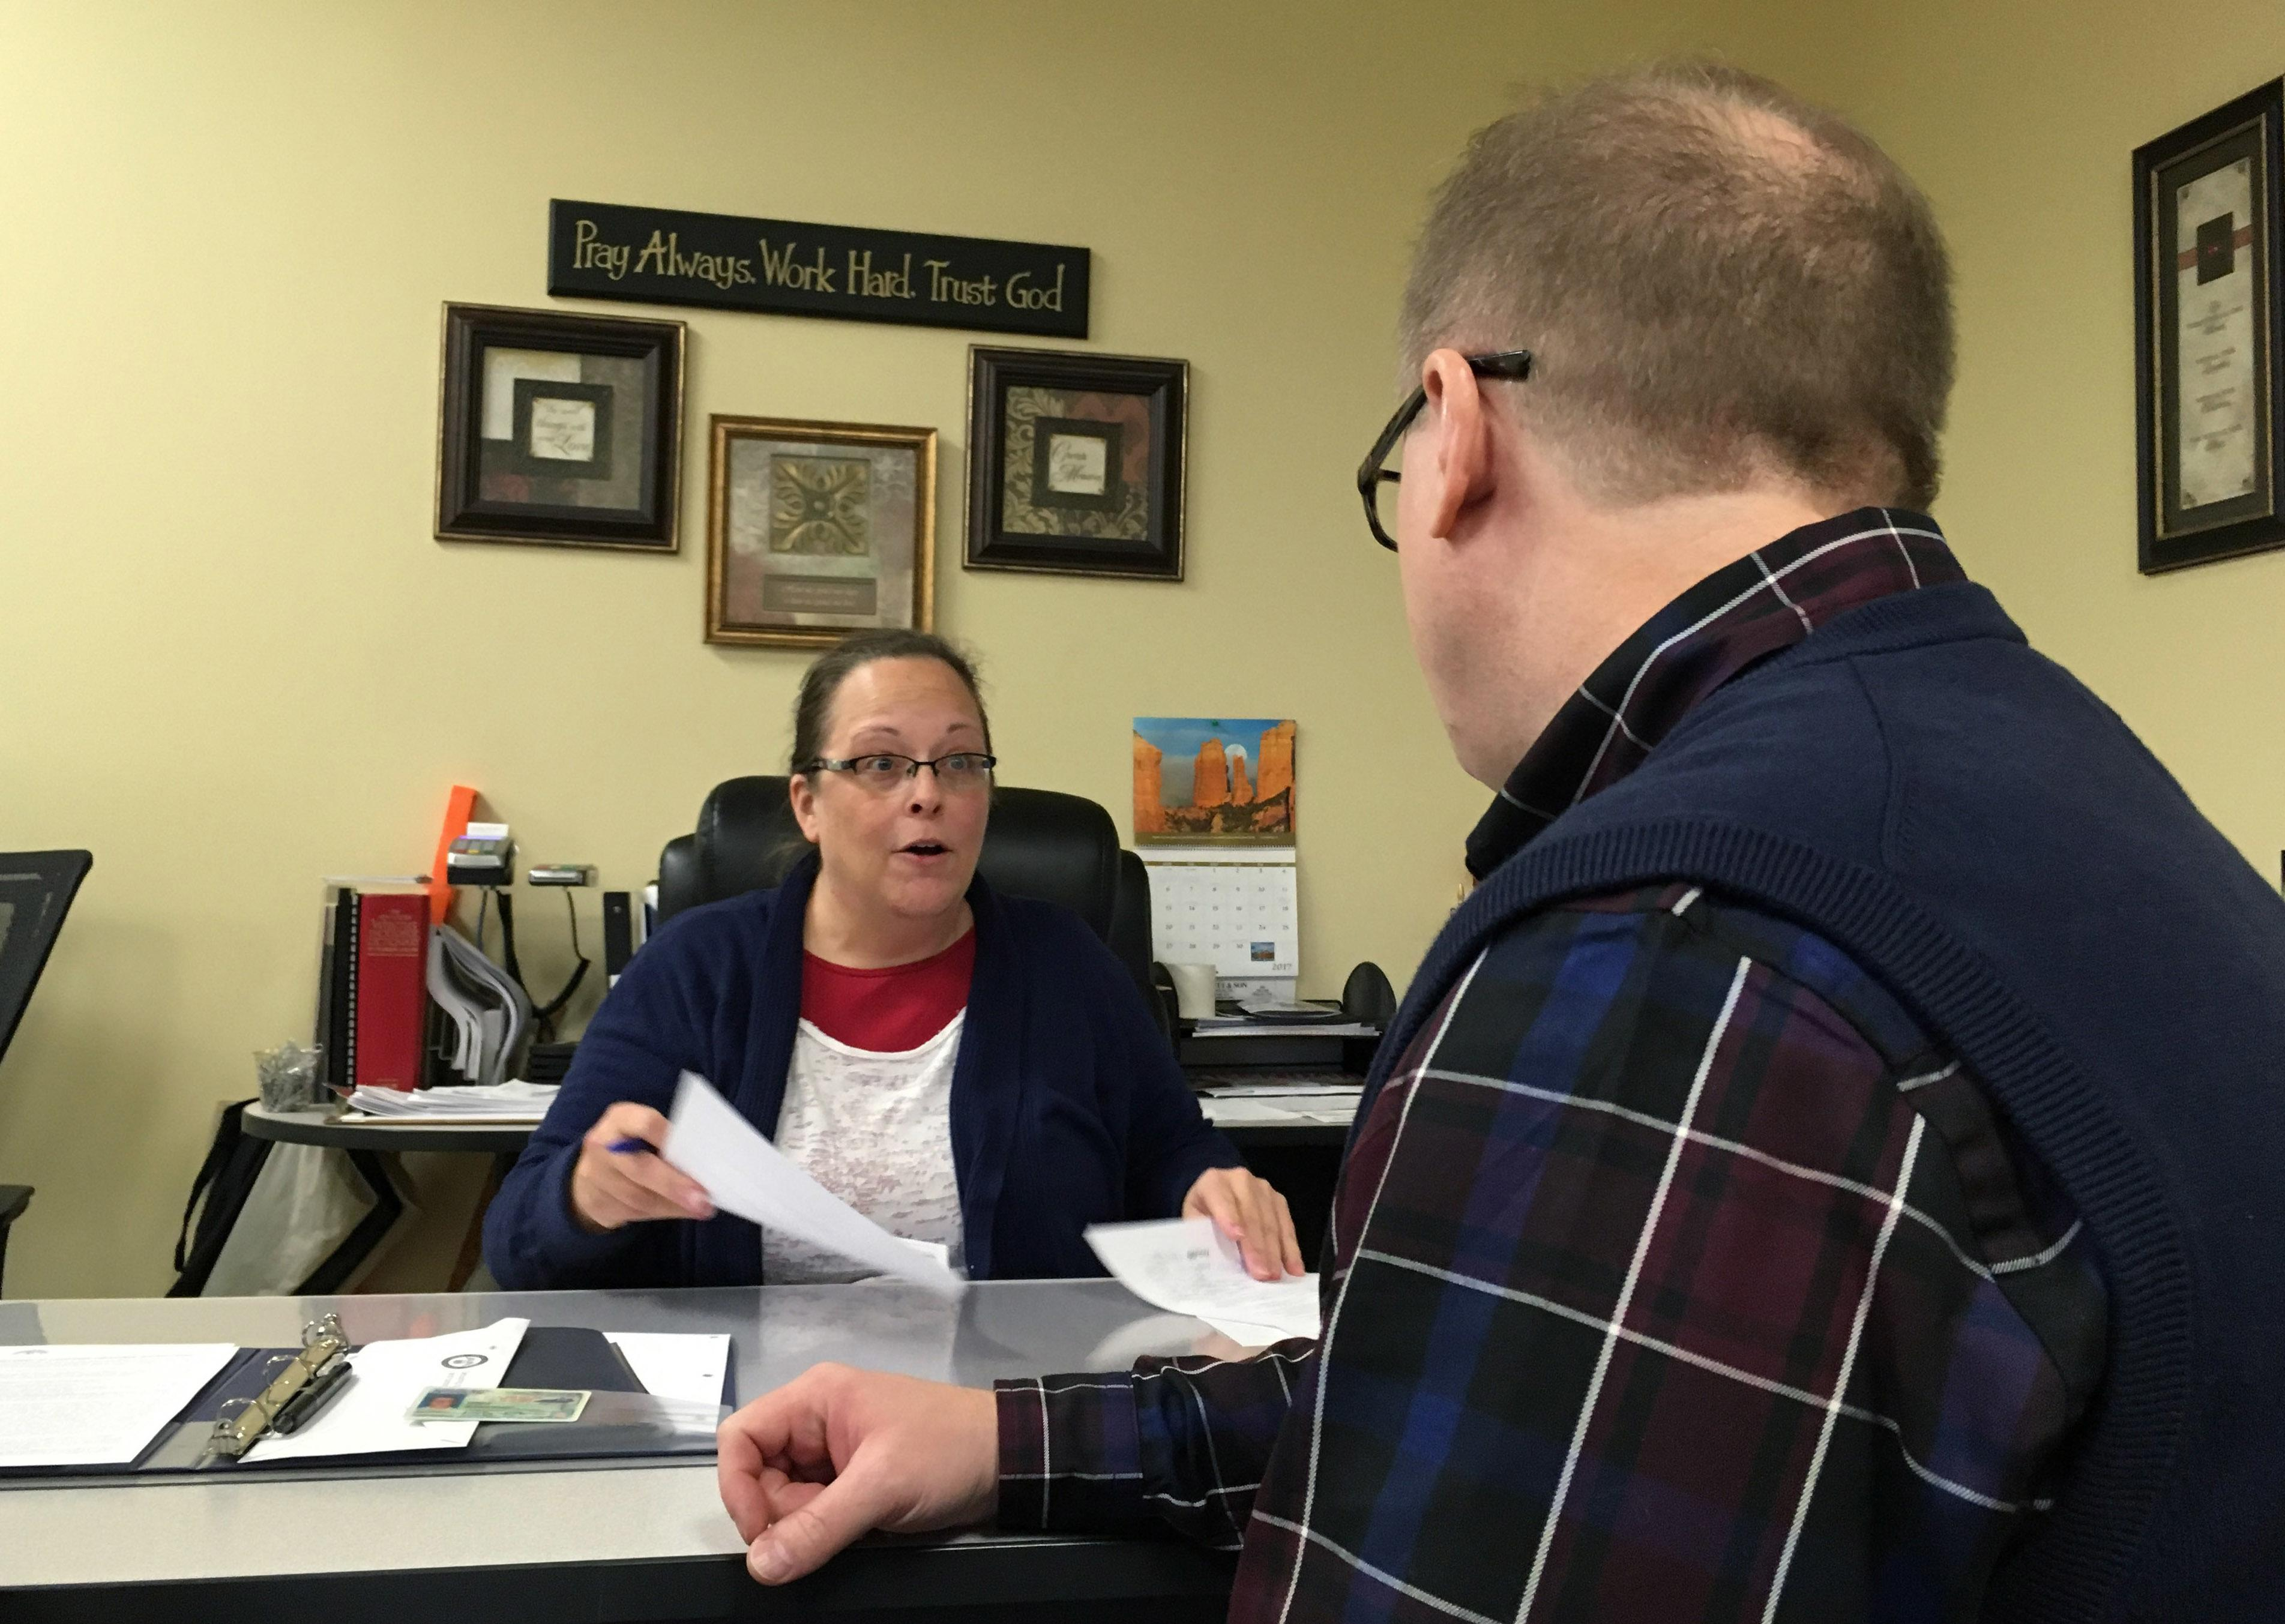 David Ermold, right, speaks with Clerk Kim Davis as he files to run for Rowan County Clerk Wednesday, Dec. 6, 2017,  in Morehead, Ky. Davis denied Ermold and his husband a marriage license two years ago because she was opposed to gay marriage for religious reasons. (AP Photo/Adam Beam)